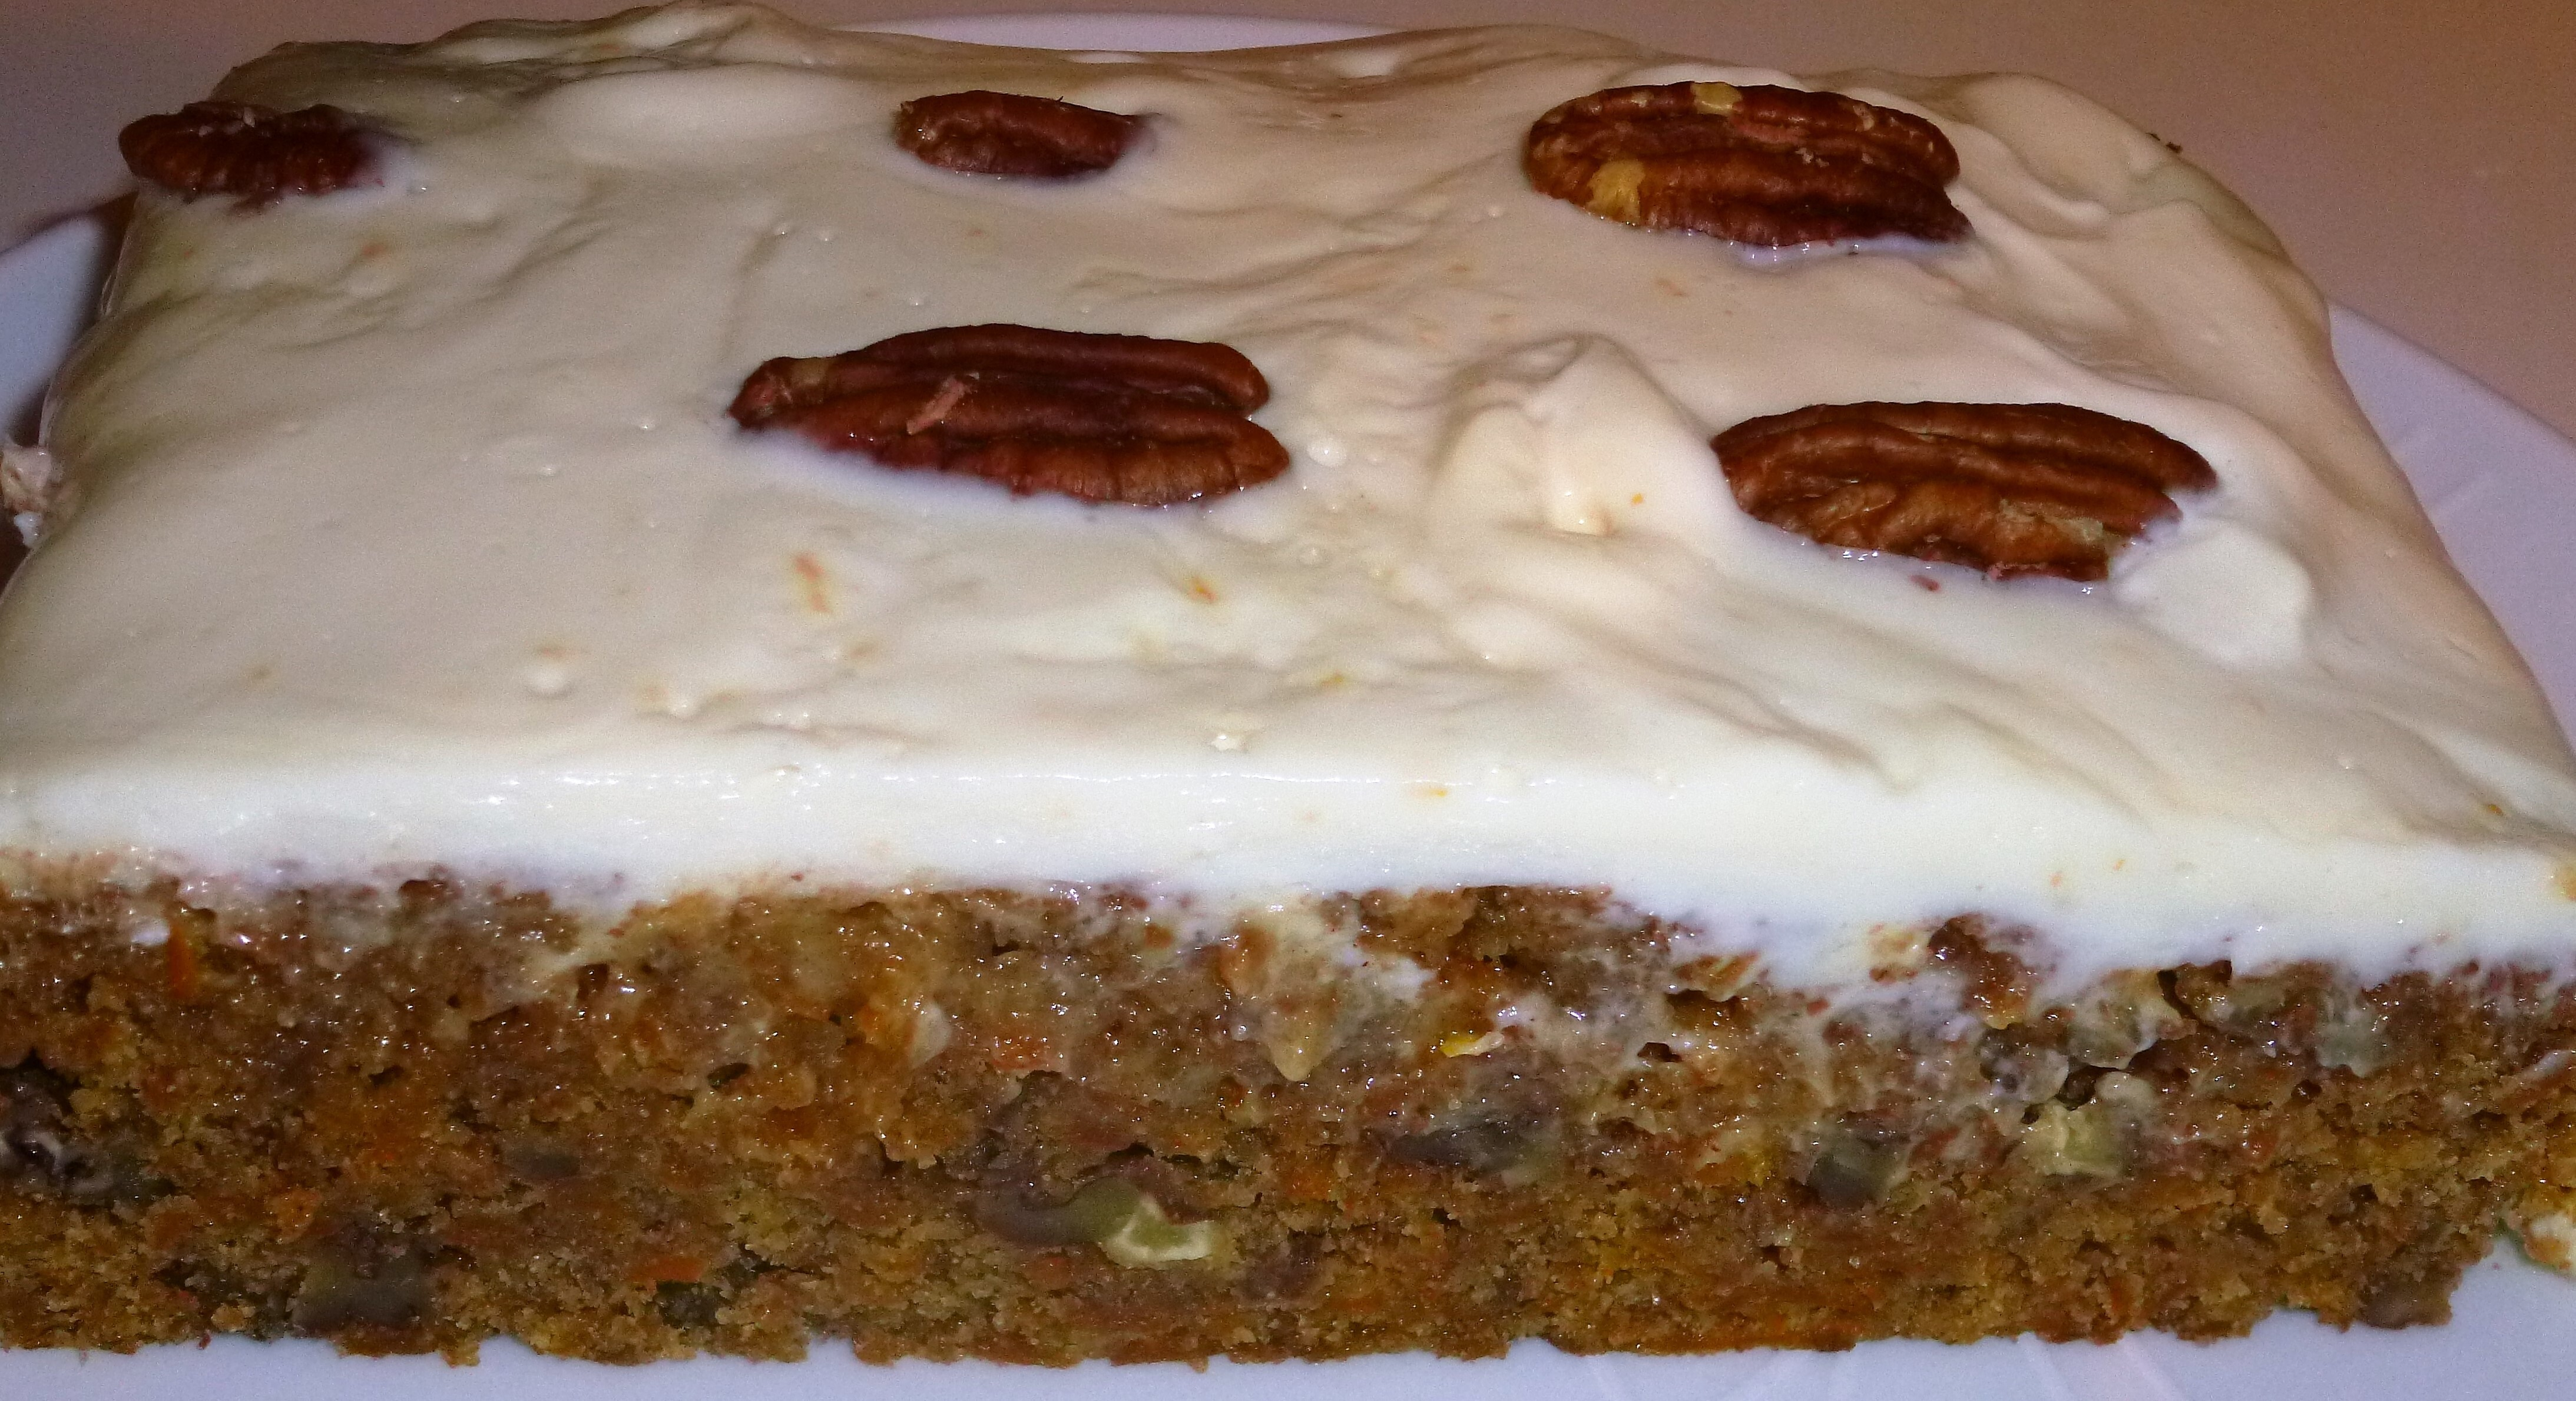 Skinny Whole Wheat Carrot Cake Recipe